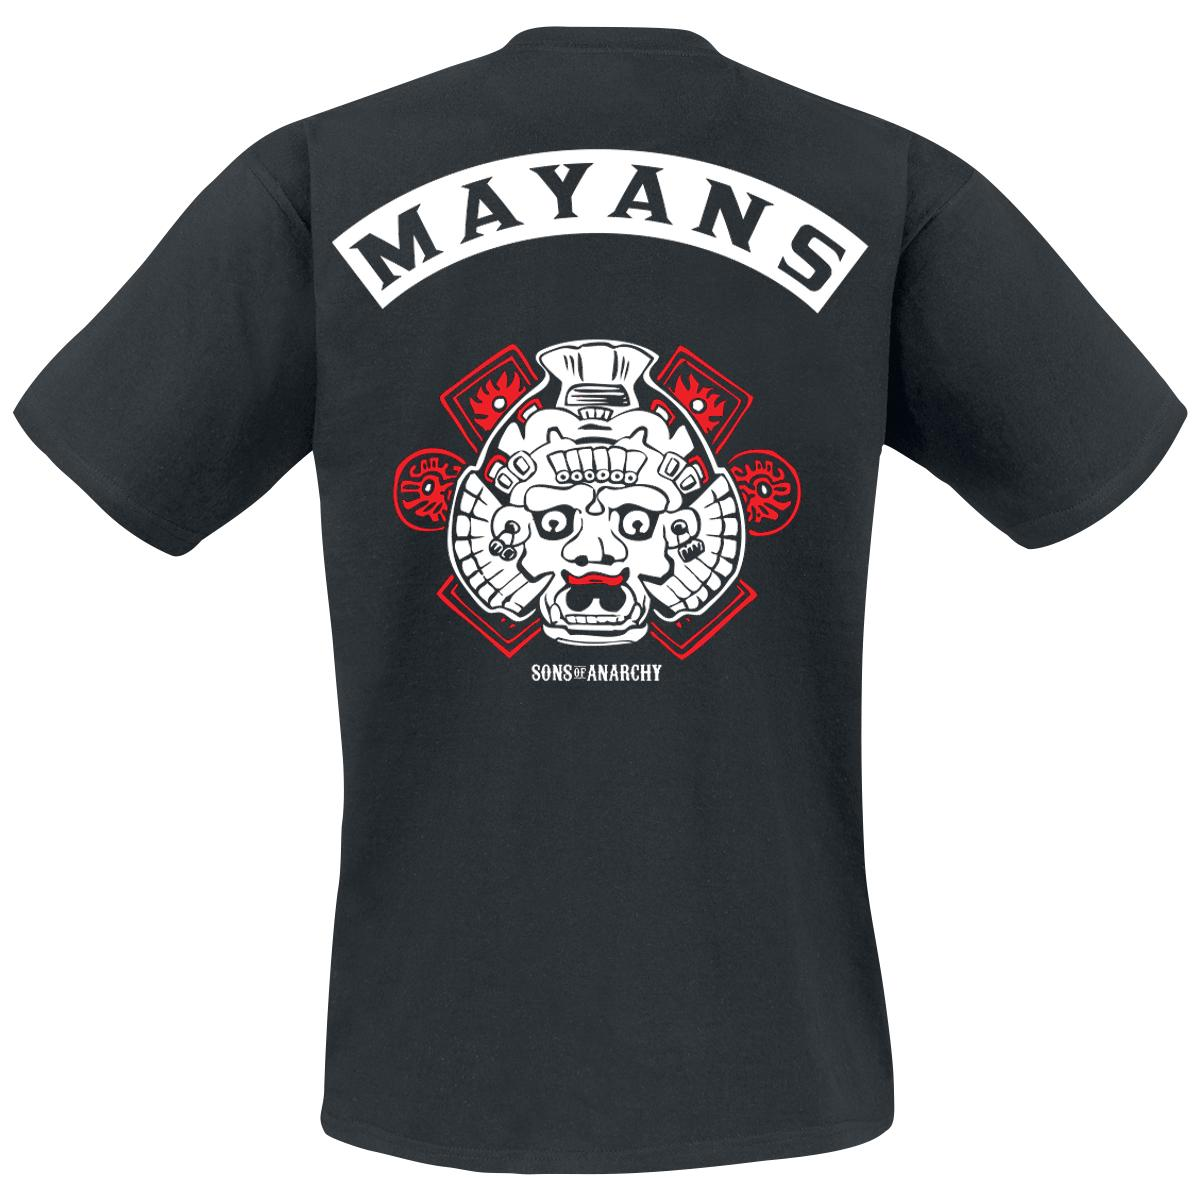 Los Mayans T-shirt Design back